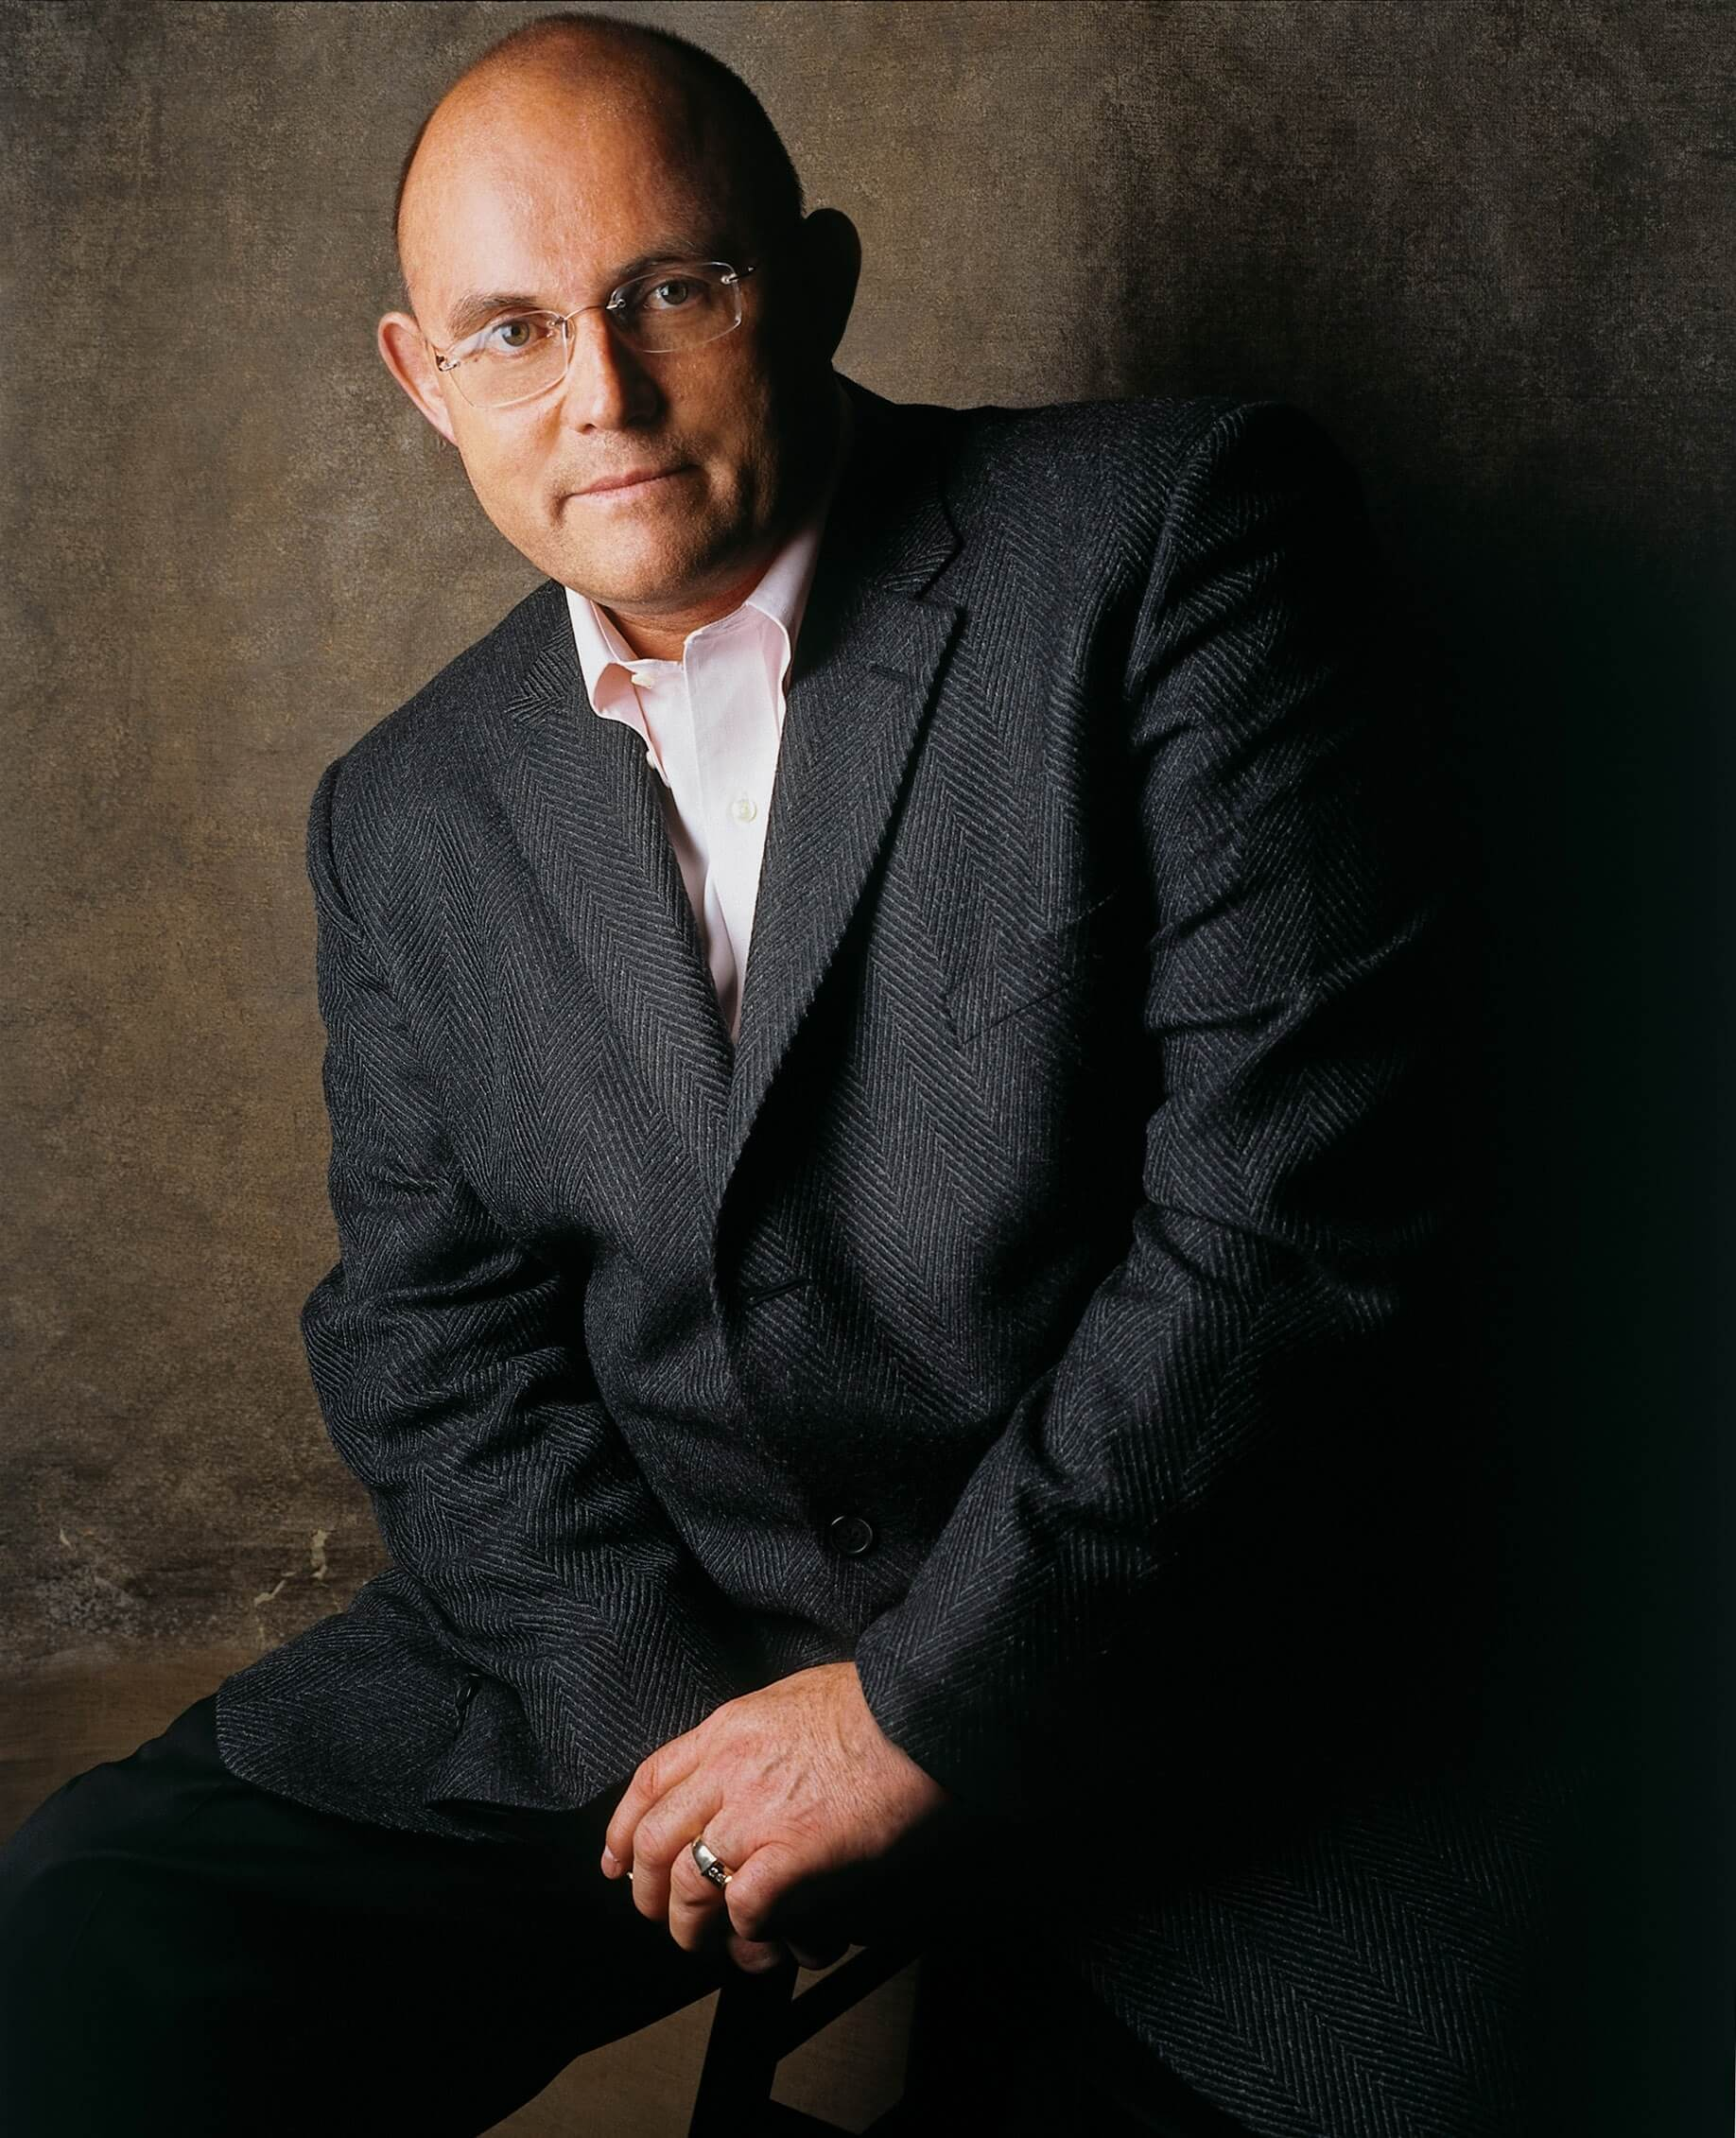 Broadway World: Acclaimed Irish Tenor Ronan Tynan Returns to Patchogue Theatre in April for One-Night Performance